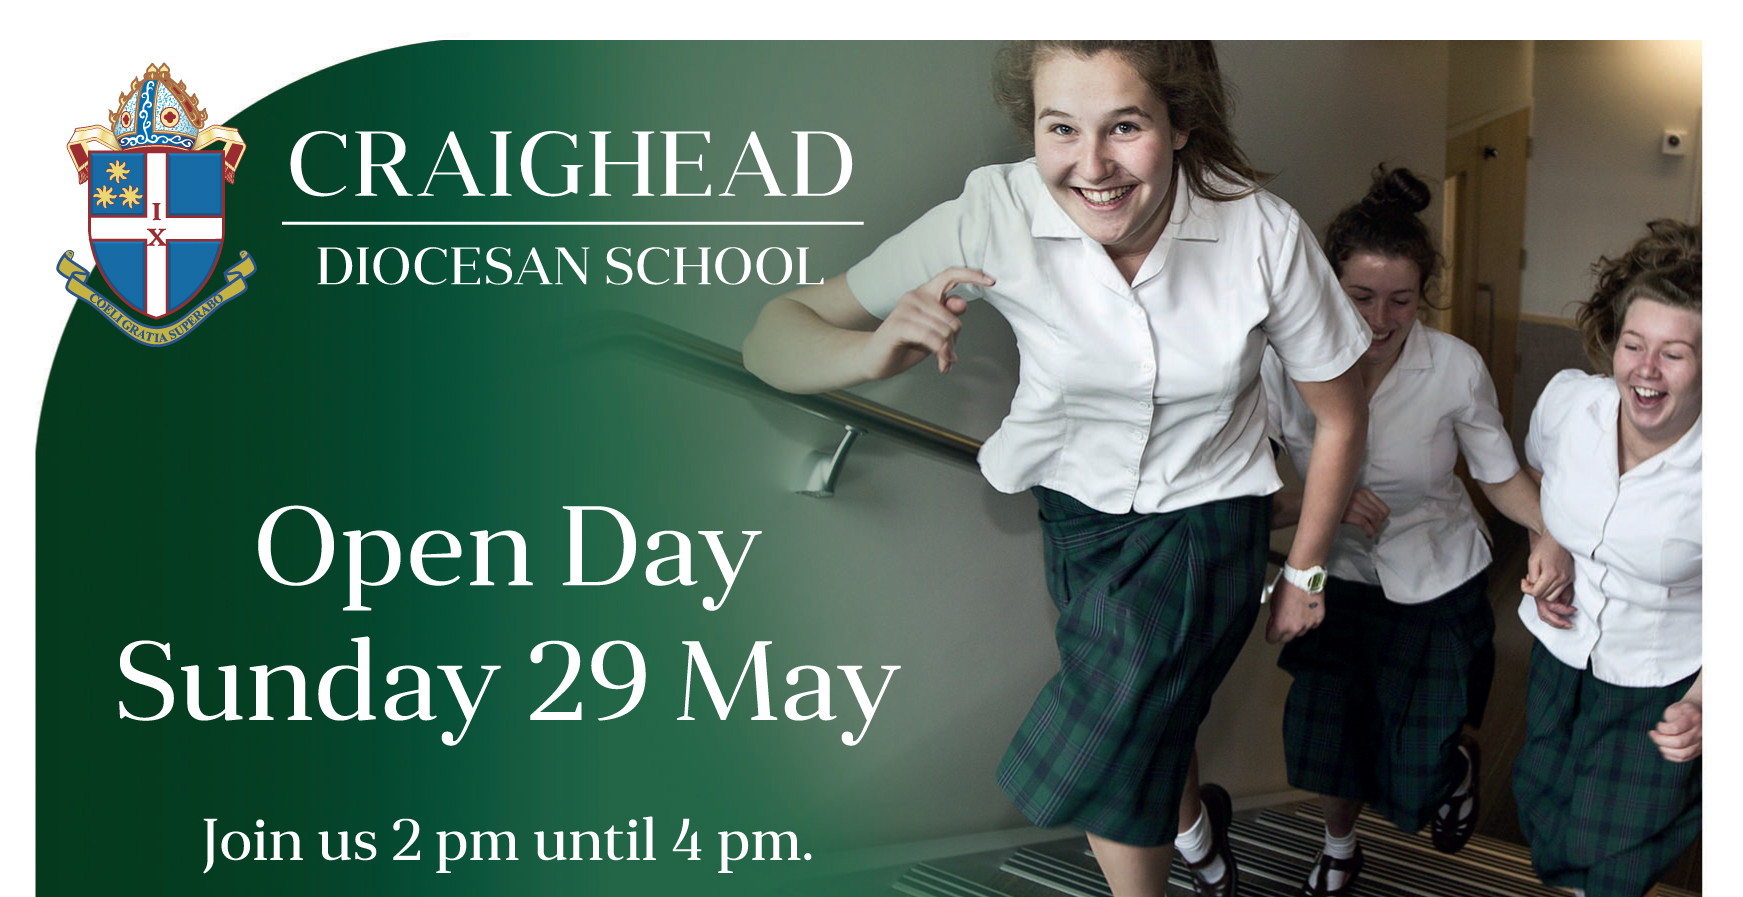 website open day ad